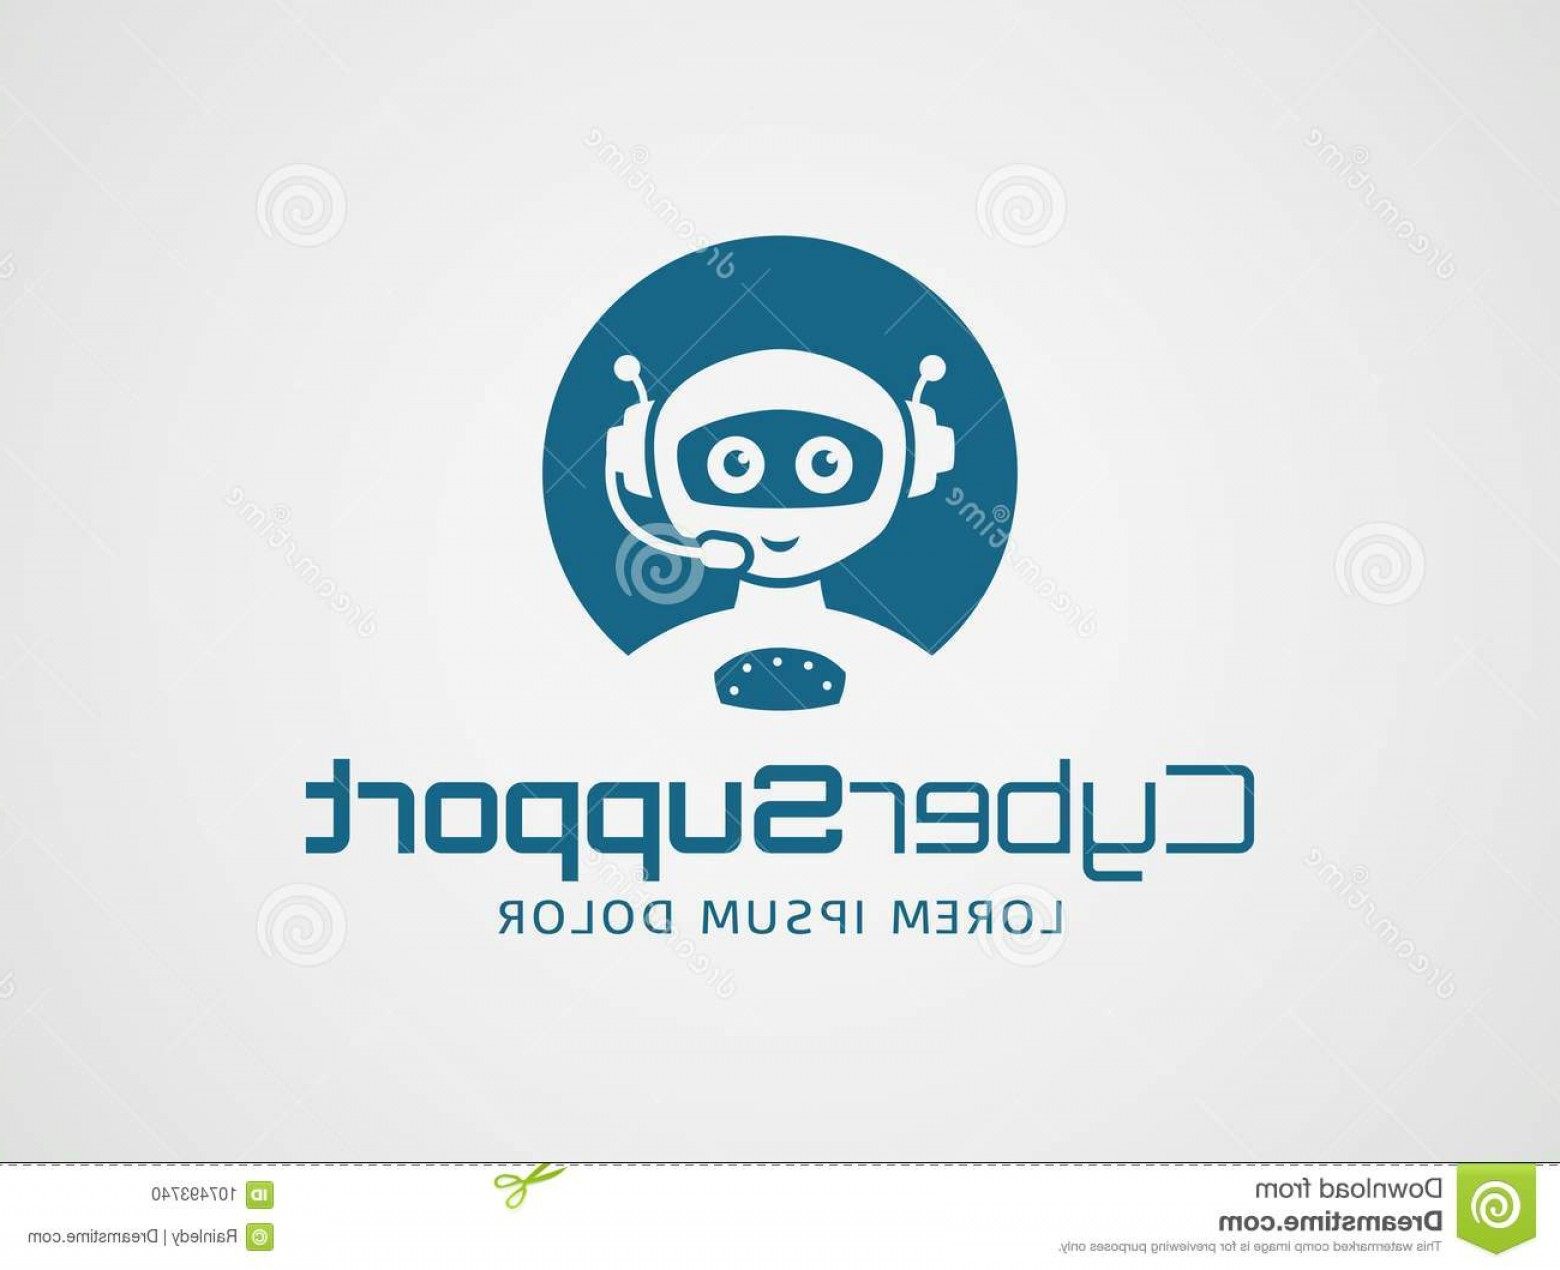 Support Vector Graphics: Robotic Customer Support Vector Logo Smart Robot Headset Template Isolated White Background Artificial Intelligence Image